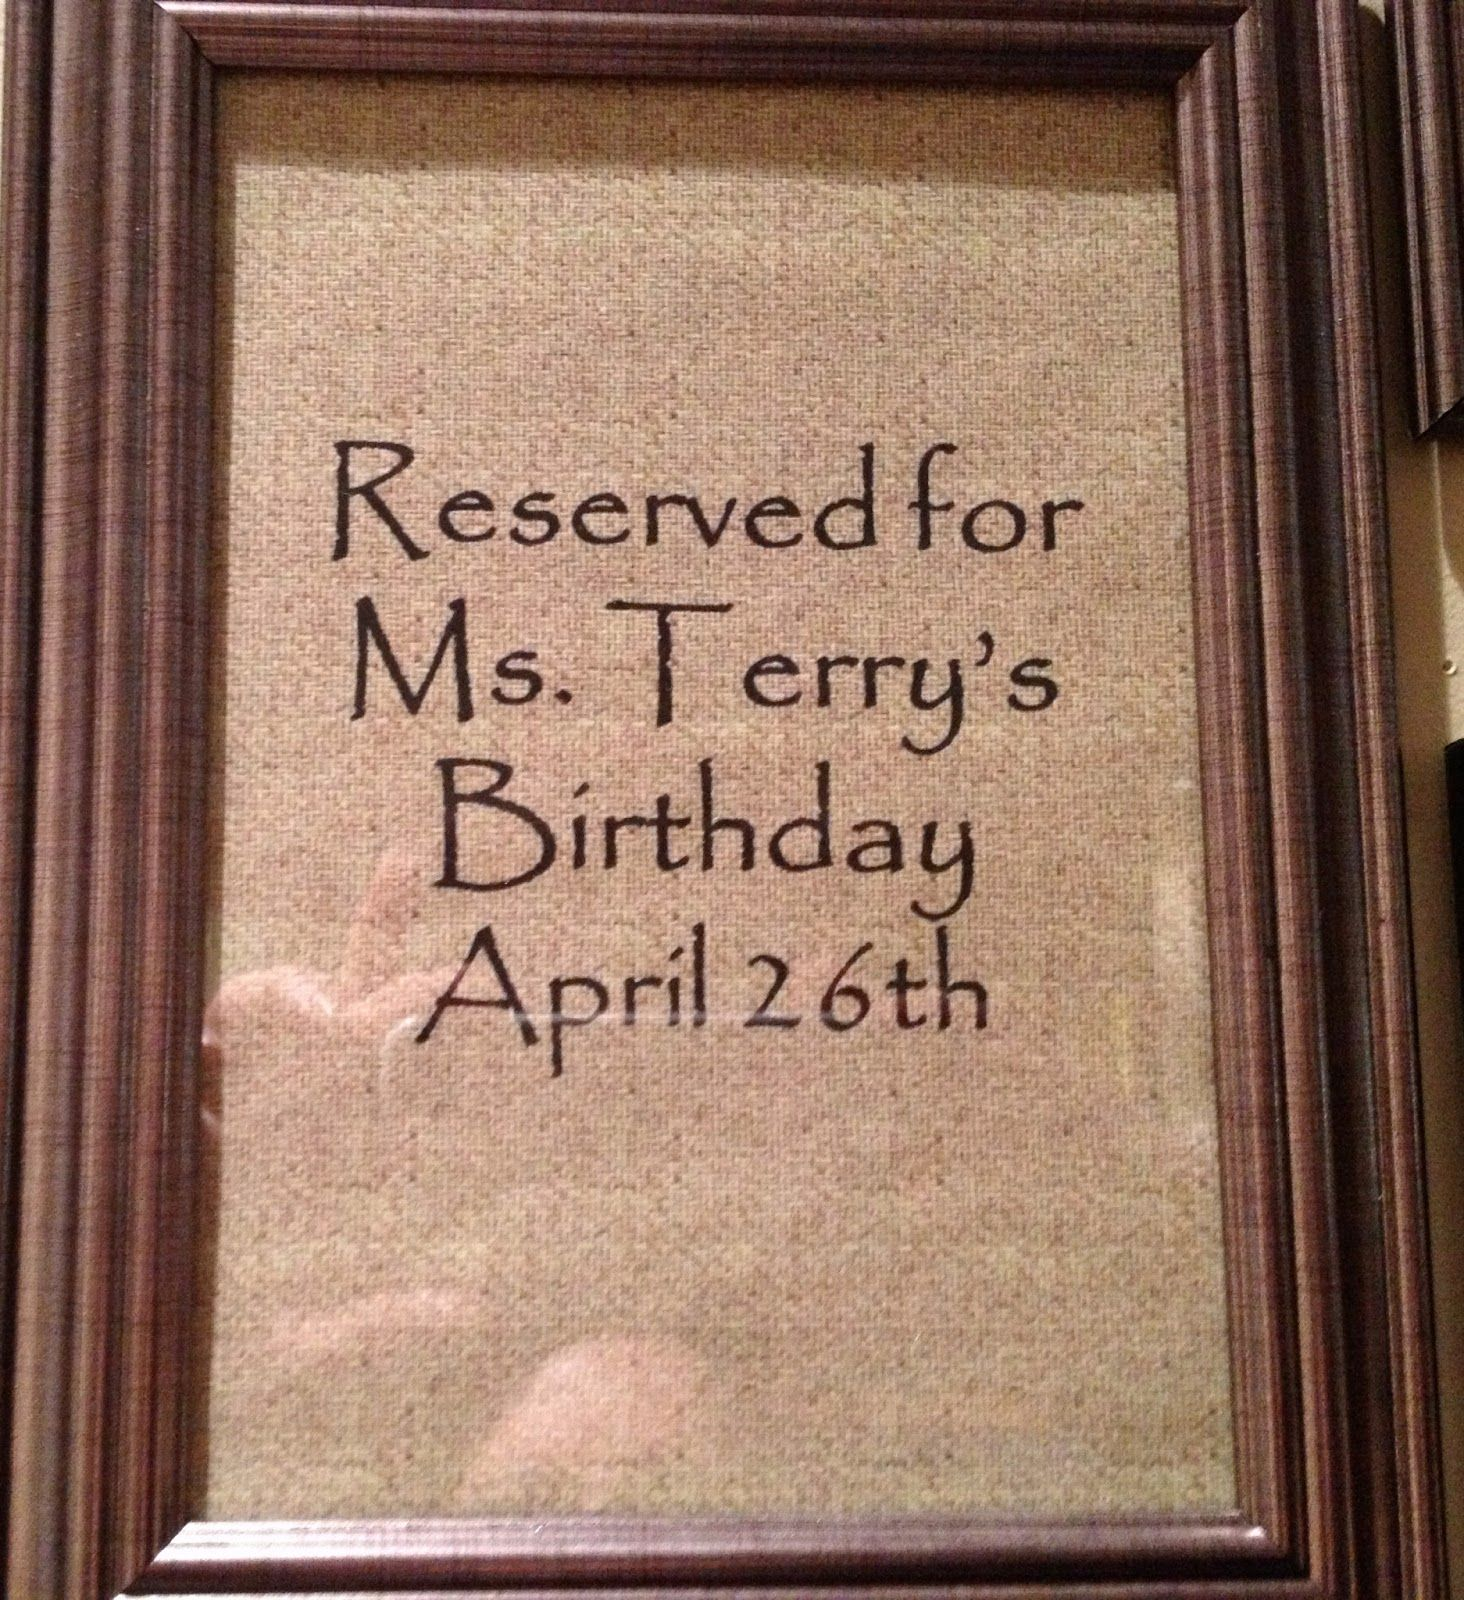 Example of waiting frame for birthday decorating!